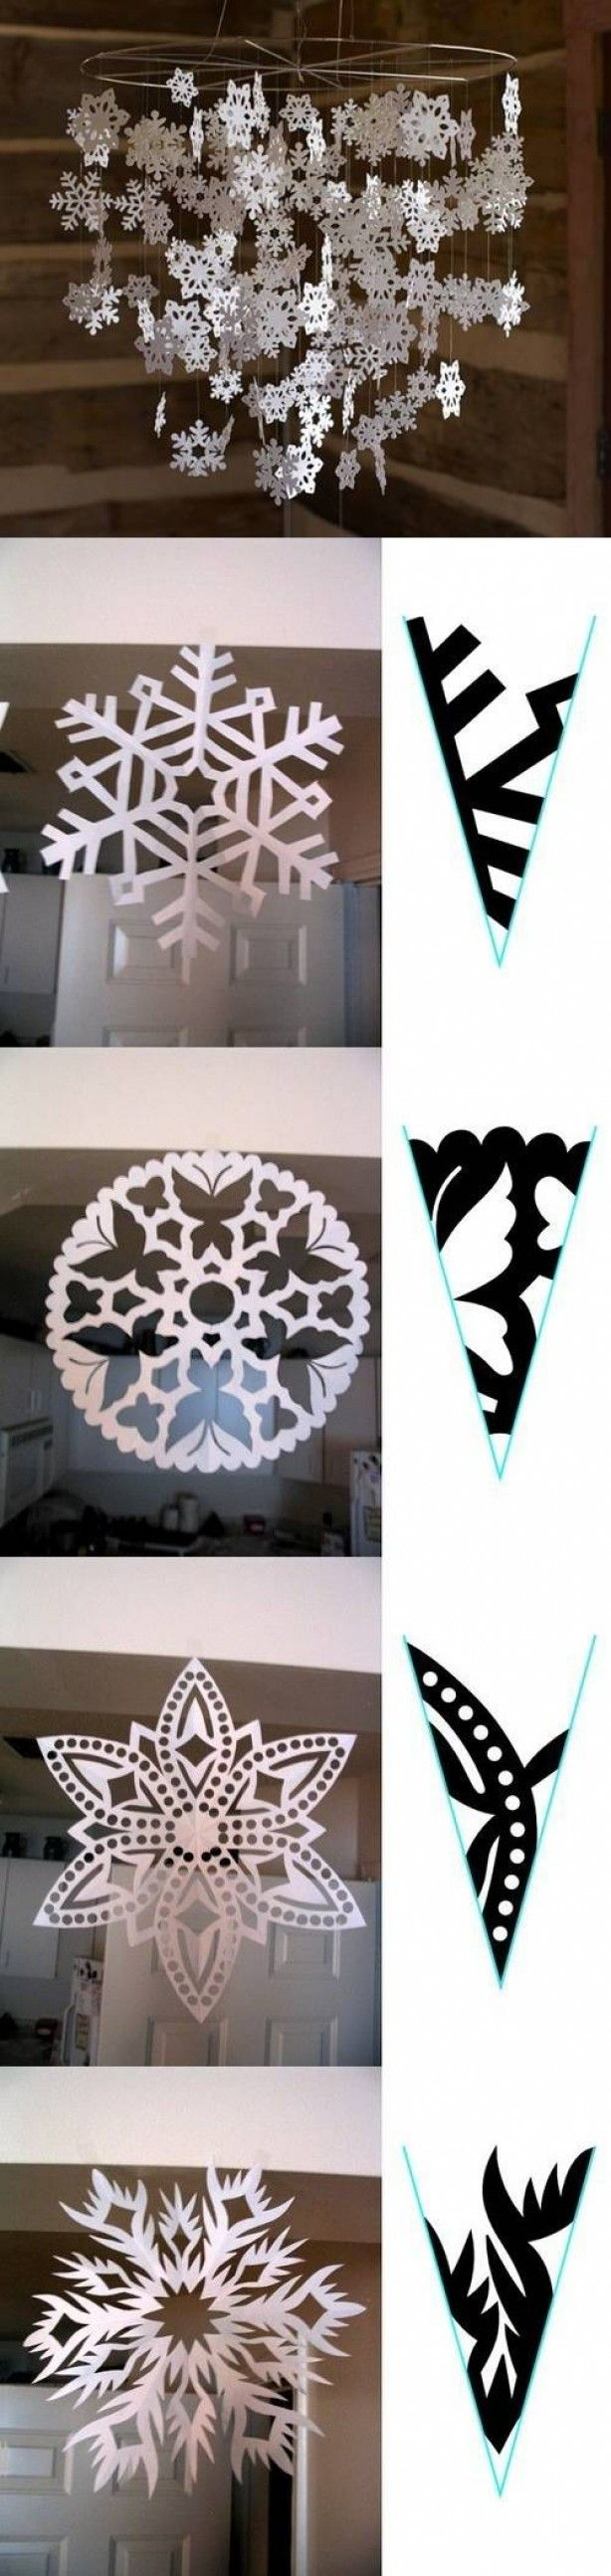 im determined to make snowflakes this year!